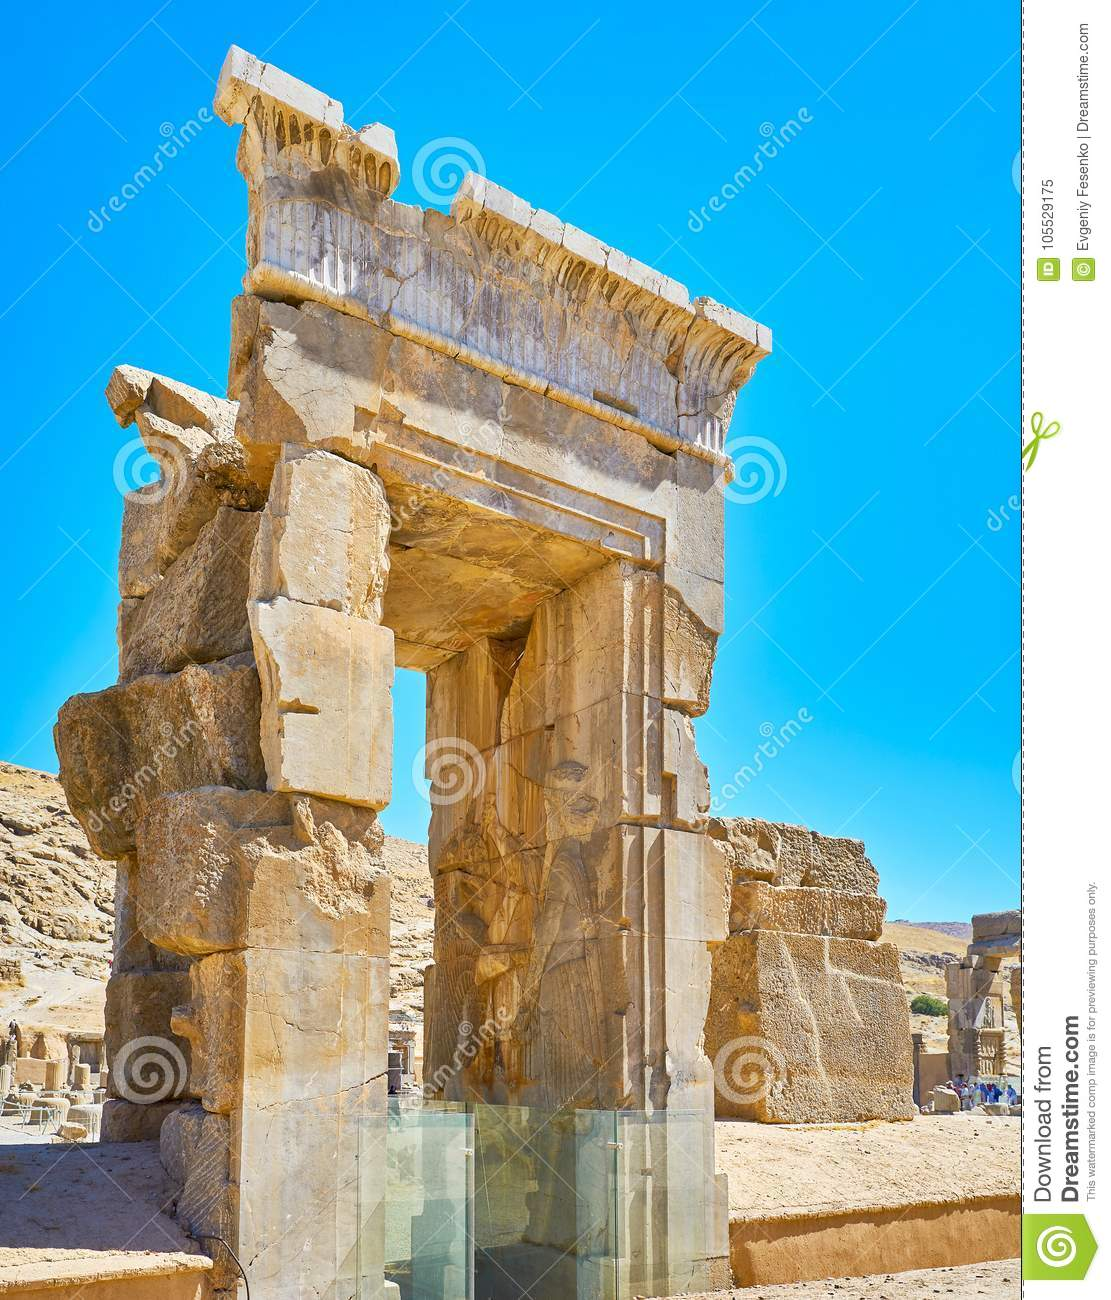 Remains Of Stone Gate Persepolis Iran Stock Image Image Of Fortress Building 105529175